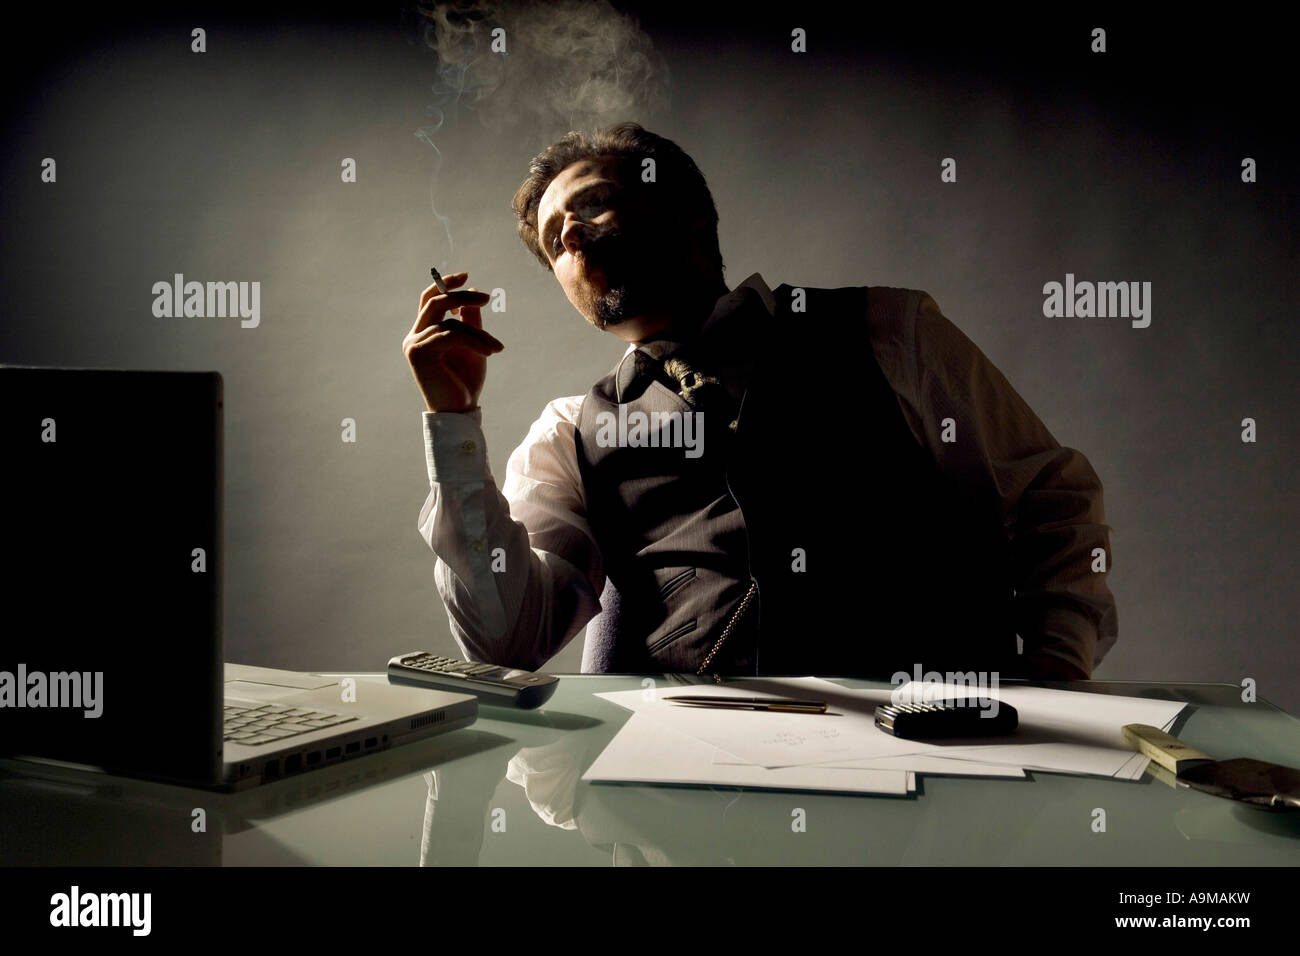 businessman smoking in his office - Stock Image